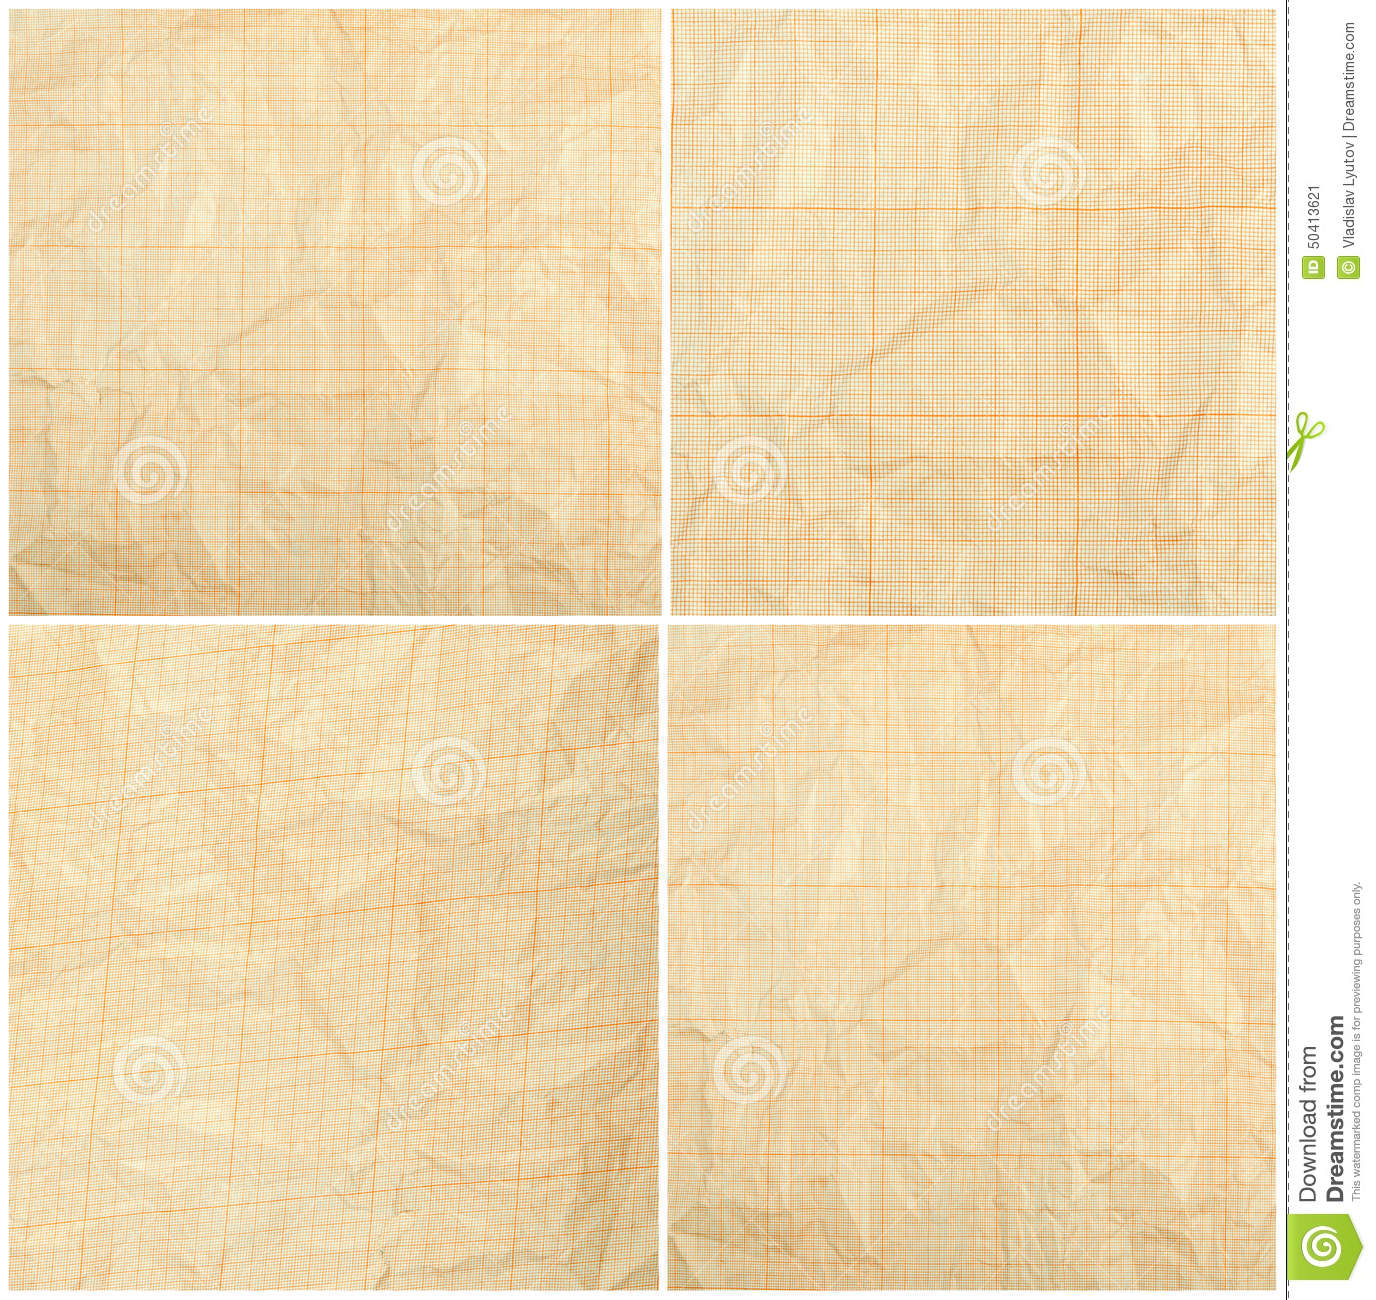 old vintage discolored dirty graph paper stock image image of